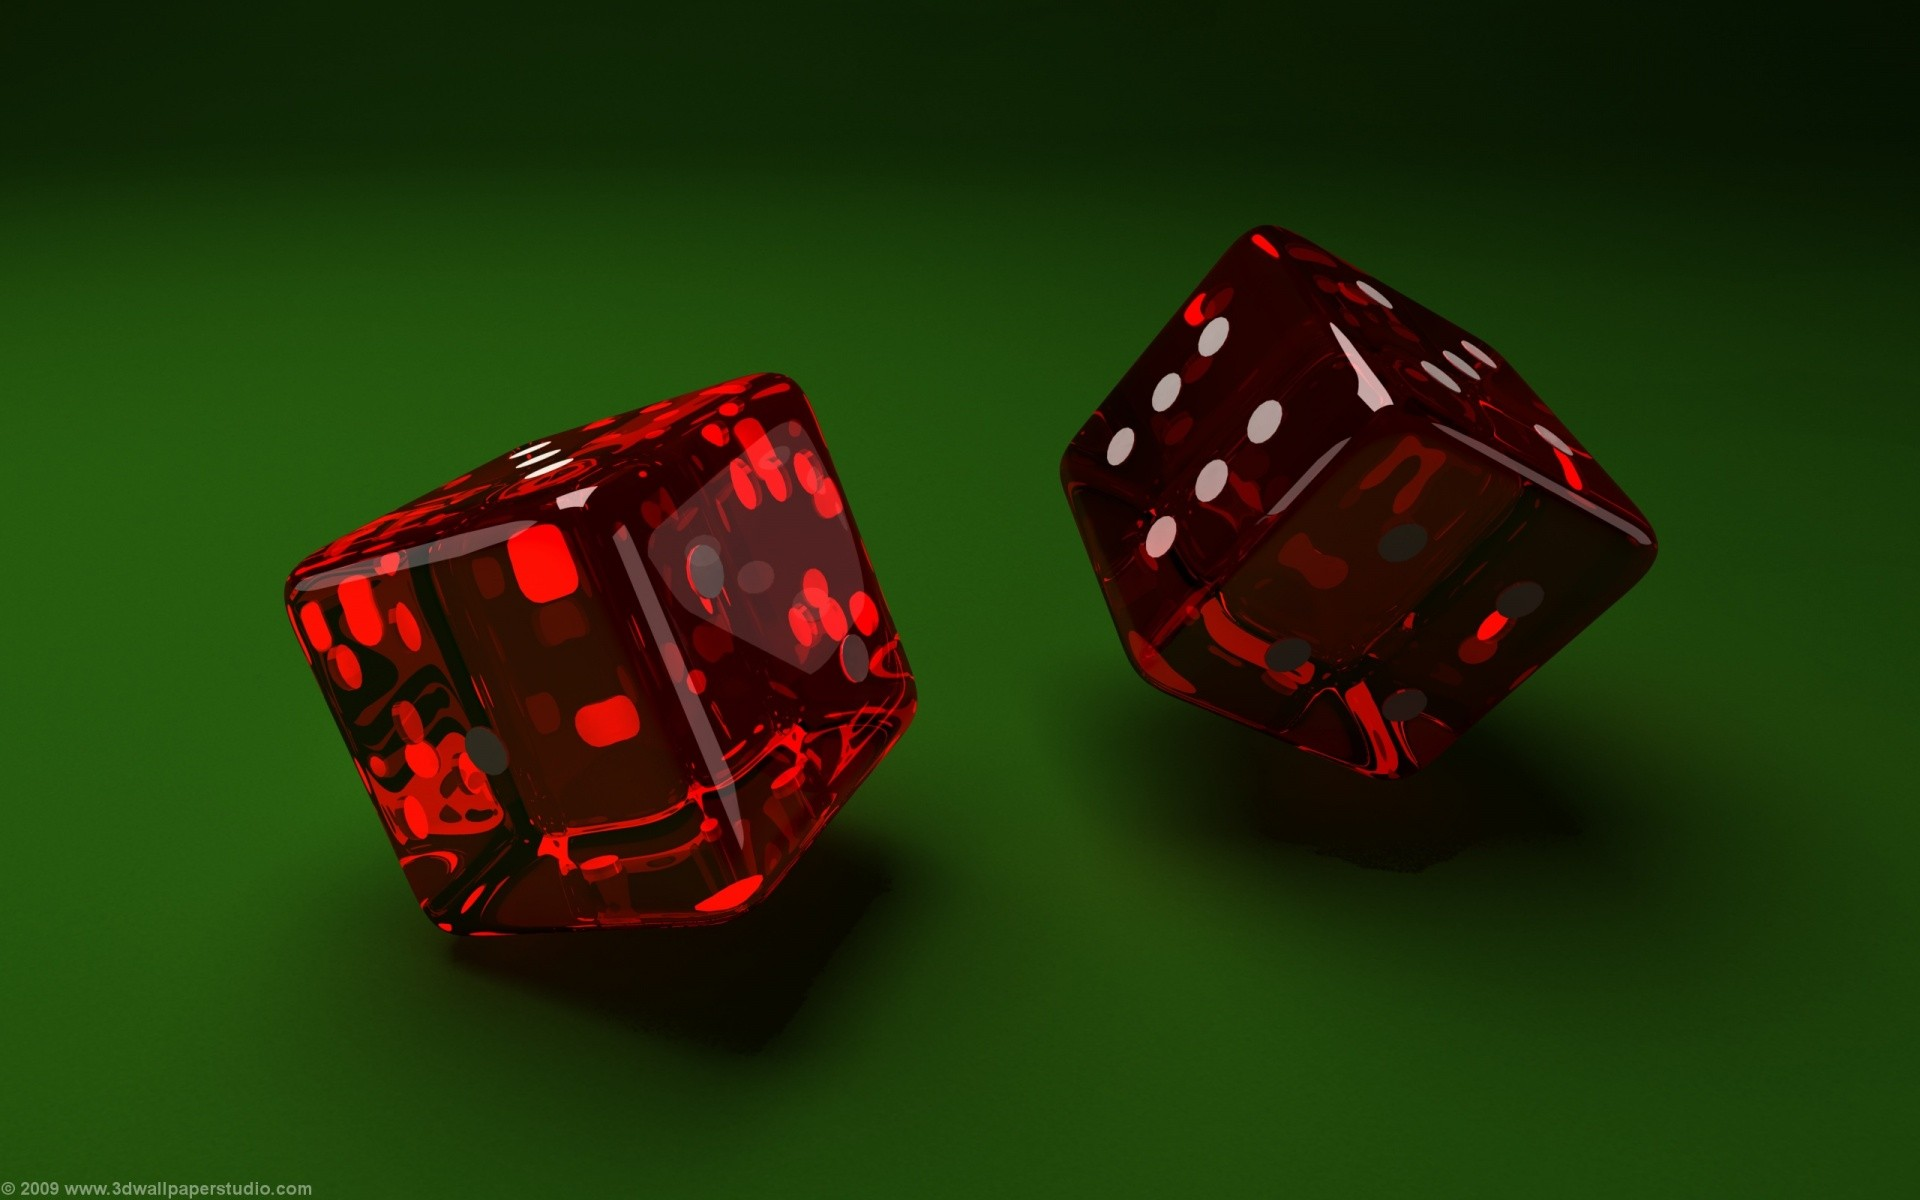 Why Casino Is No Friend To Small Business?